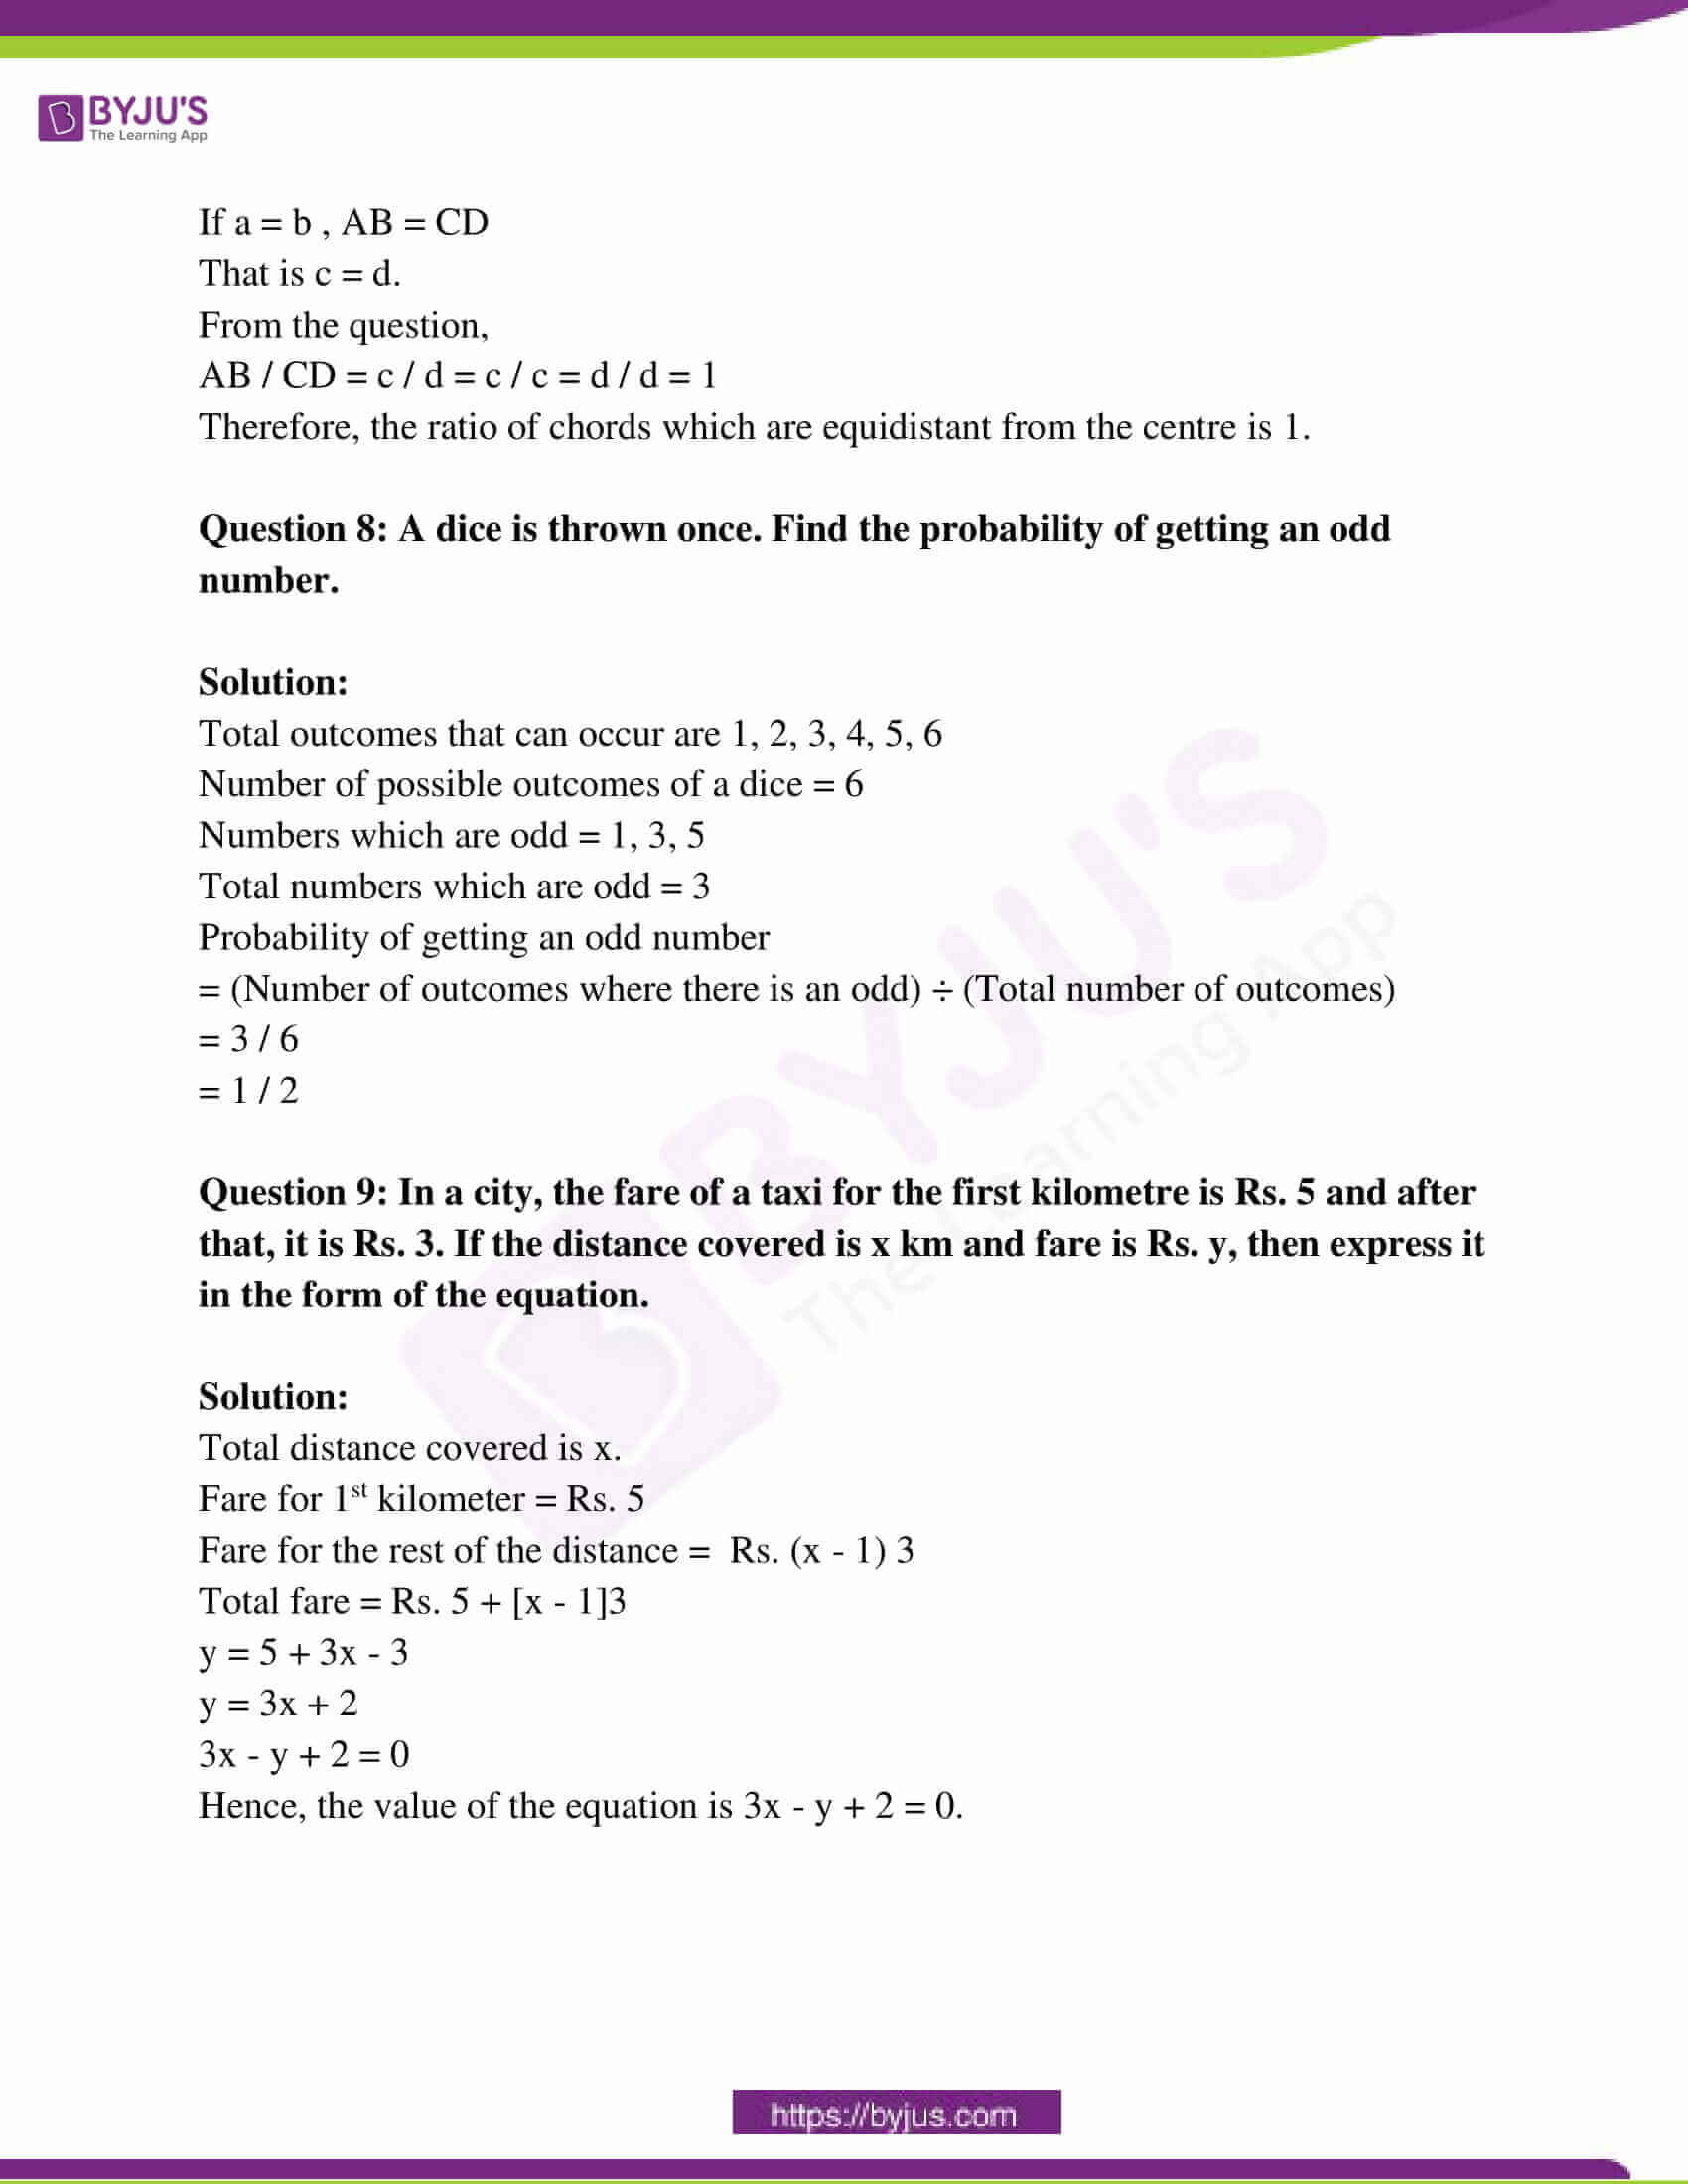 rajasthan board class 10 examination question paper sol march 2018 04